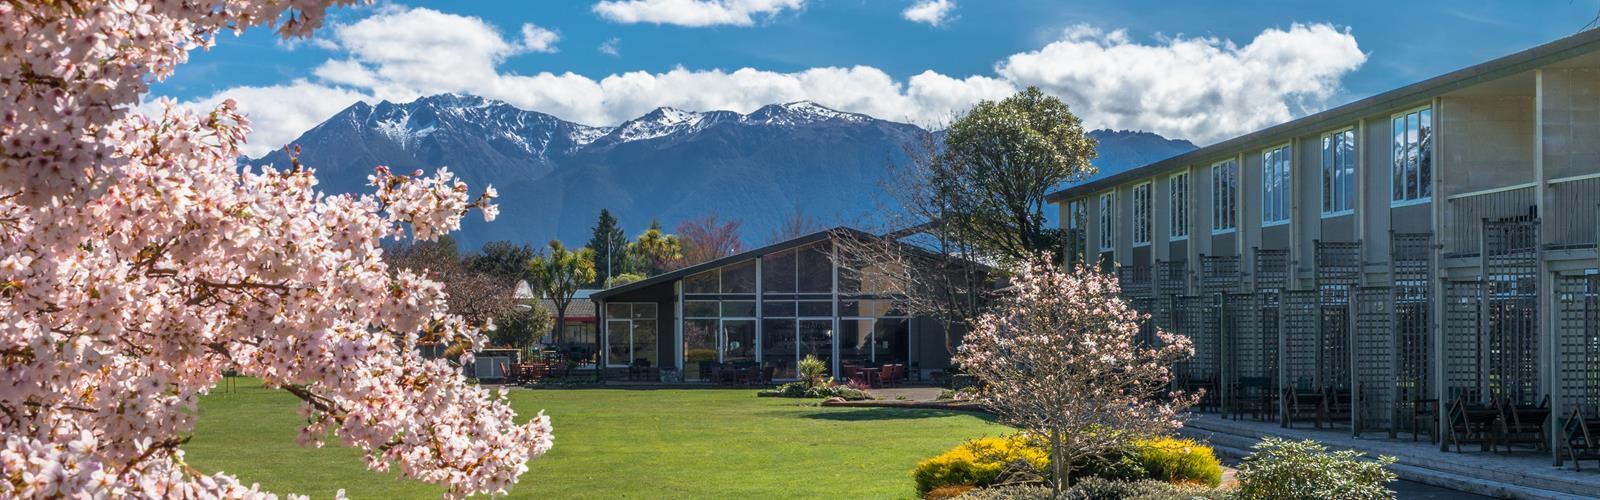 Distinction te anau hotel villas lake te anau milford for Distinctive villas